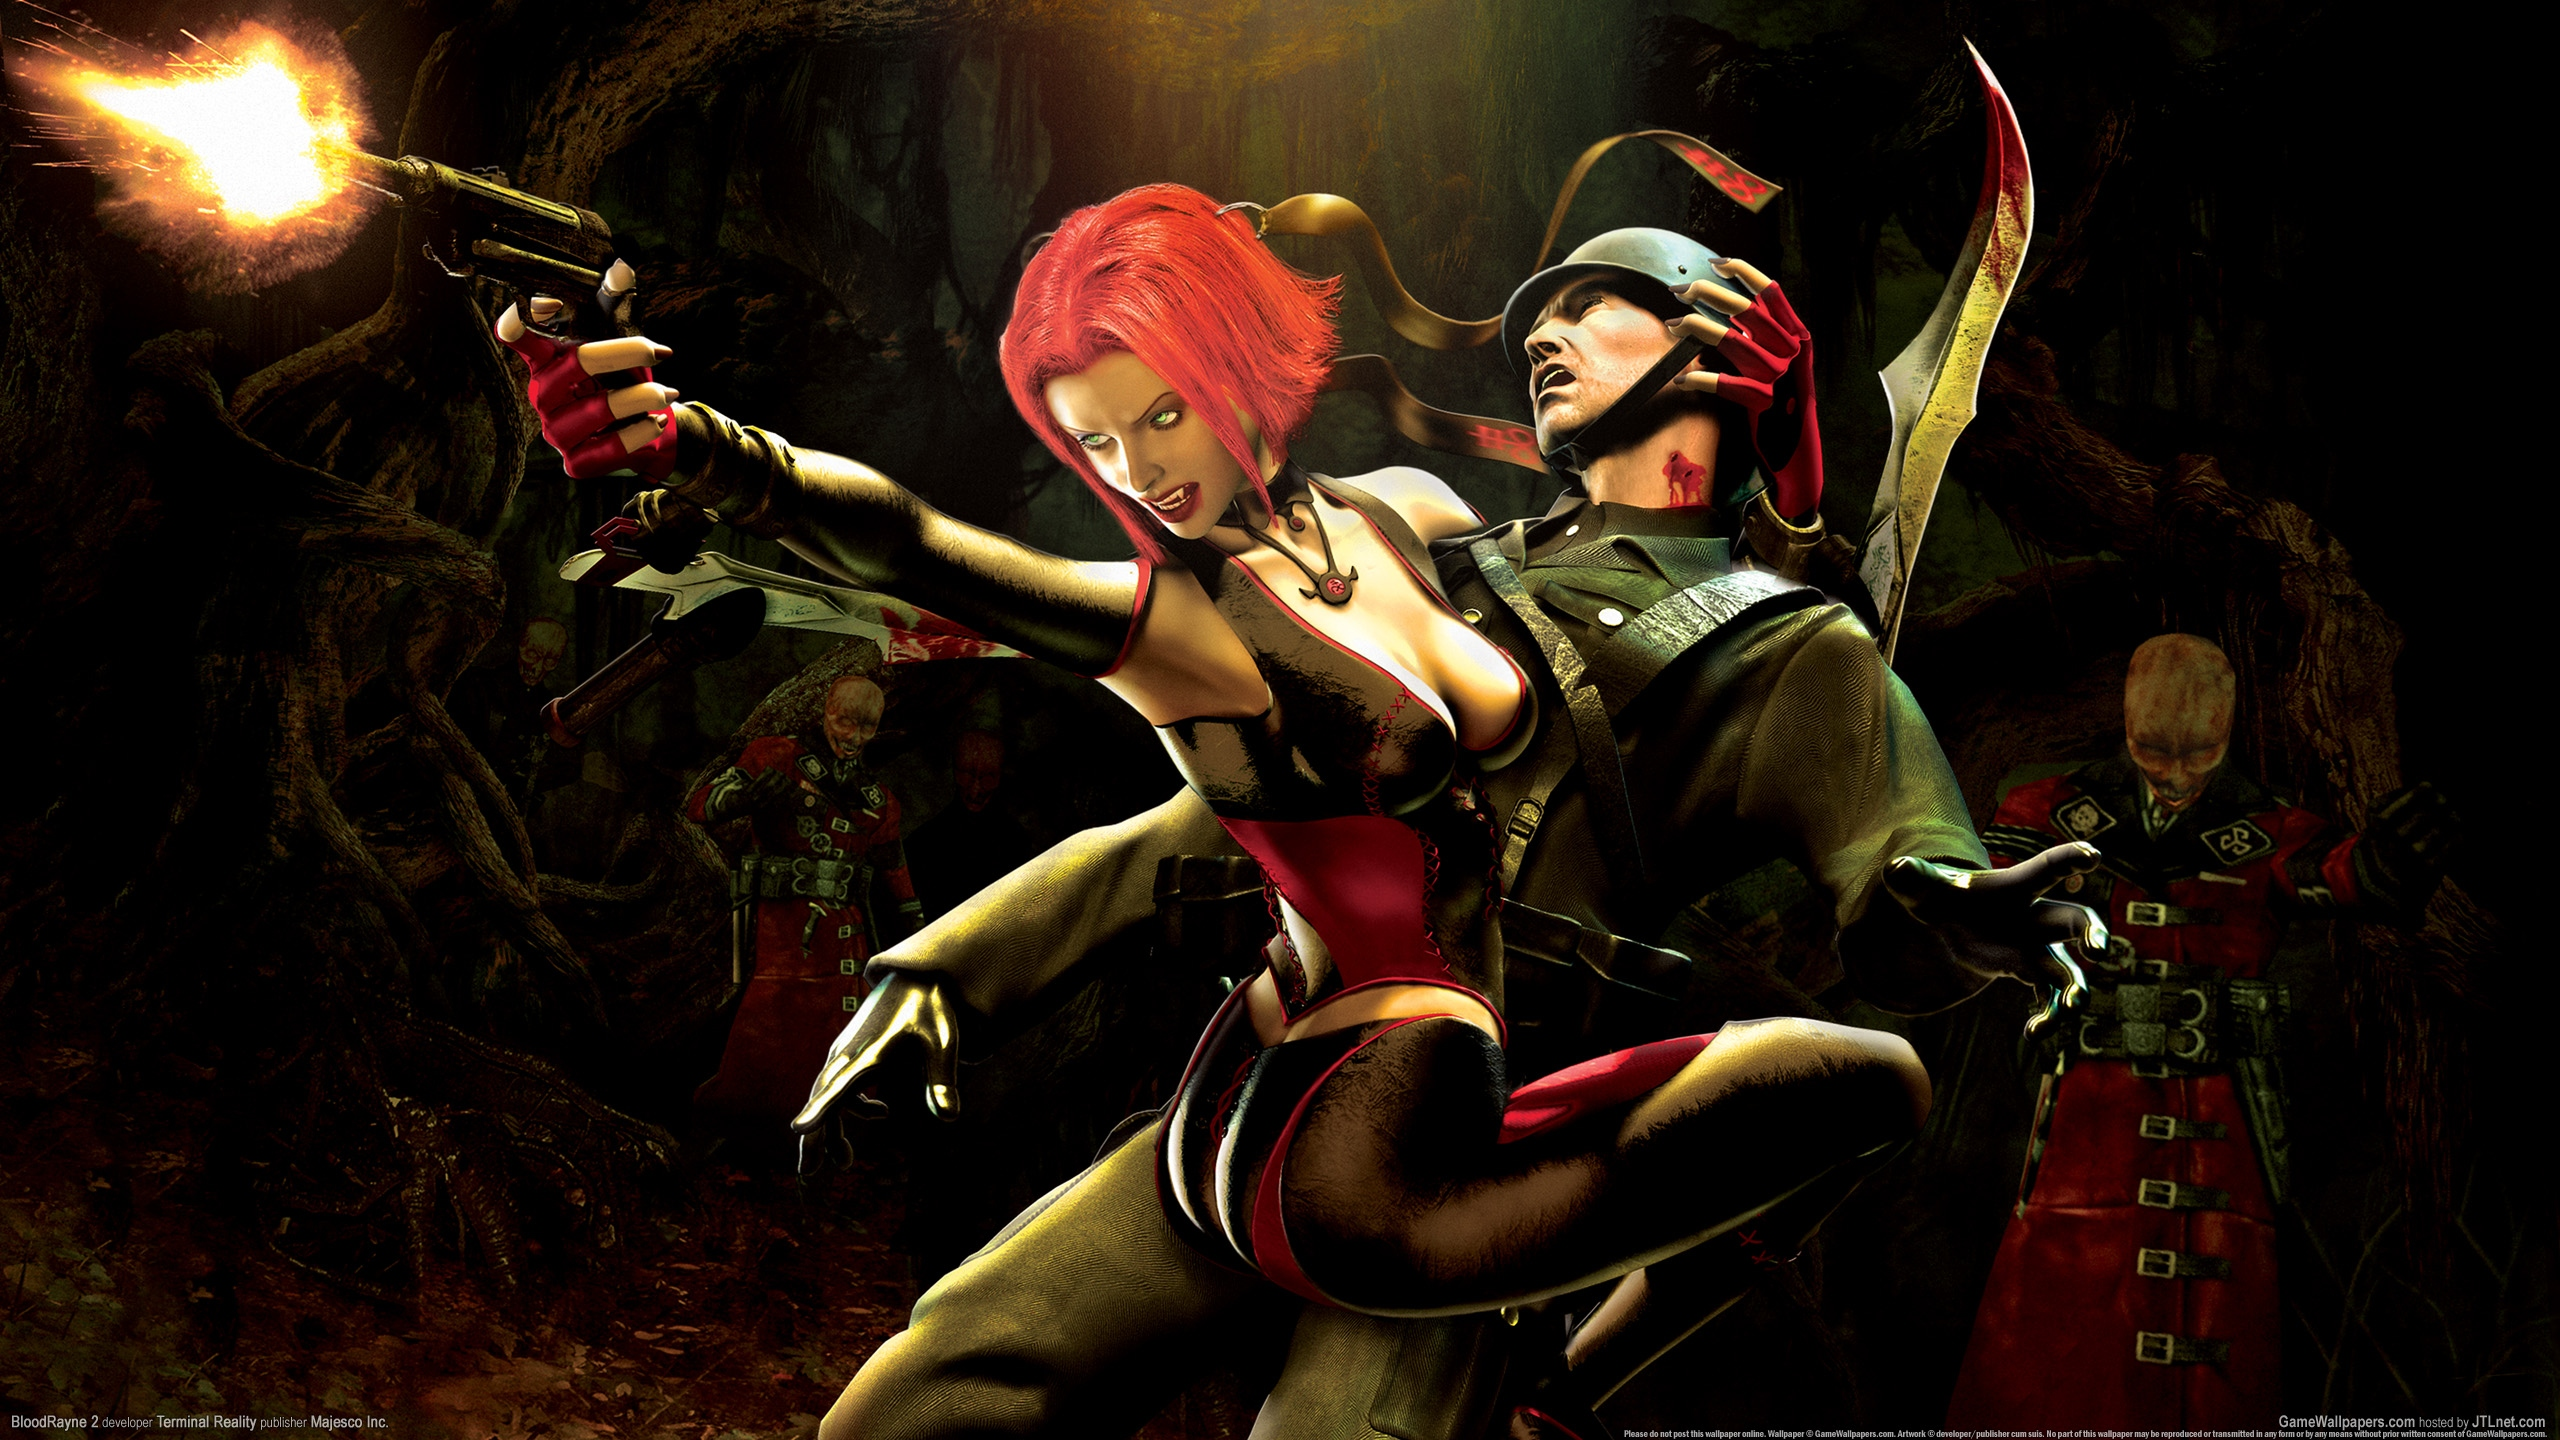 BloodRayne 2 2560x1440 wallpaper or background 09